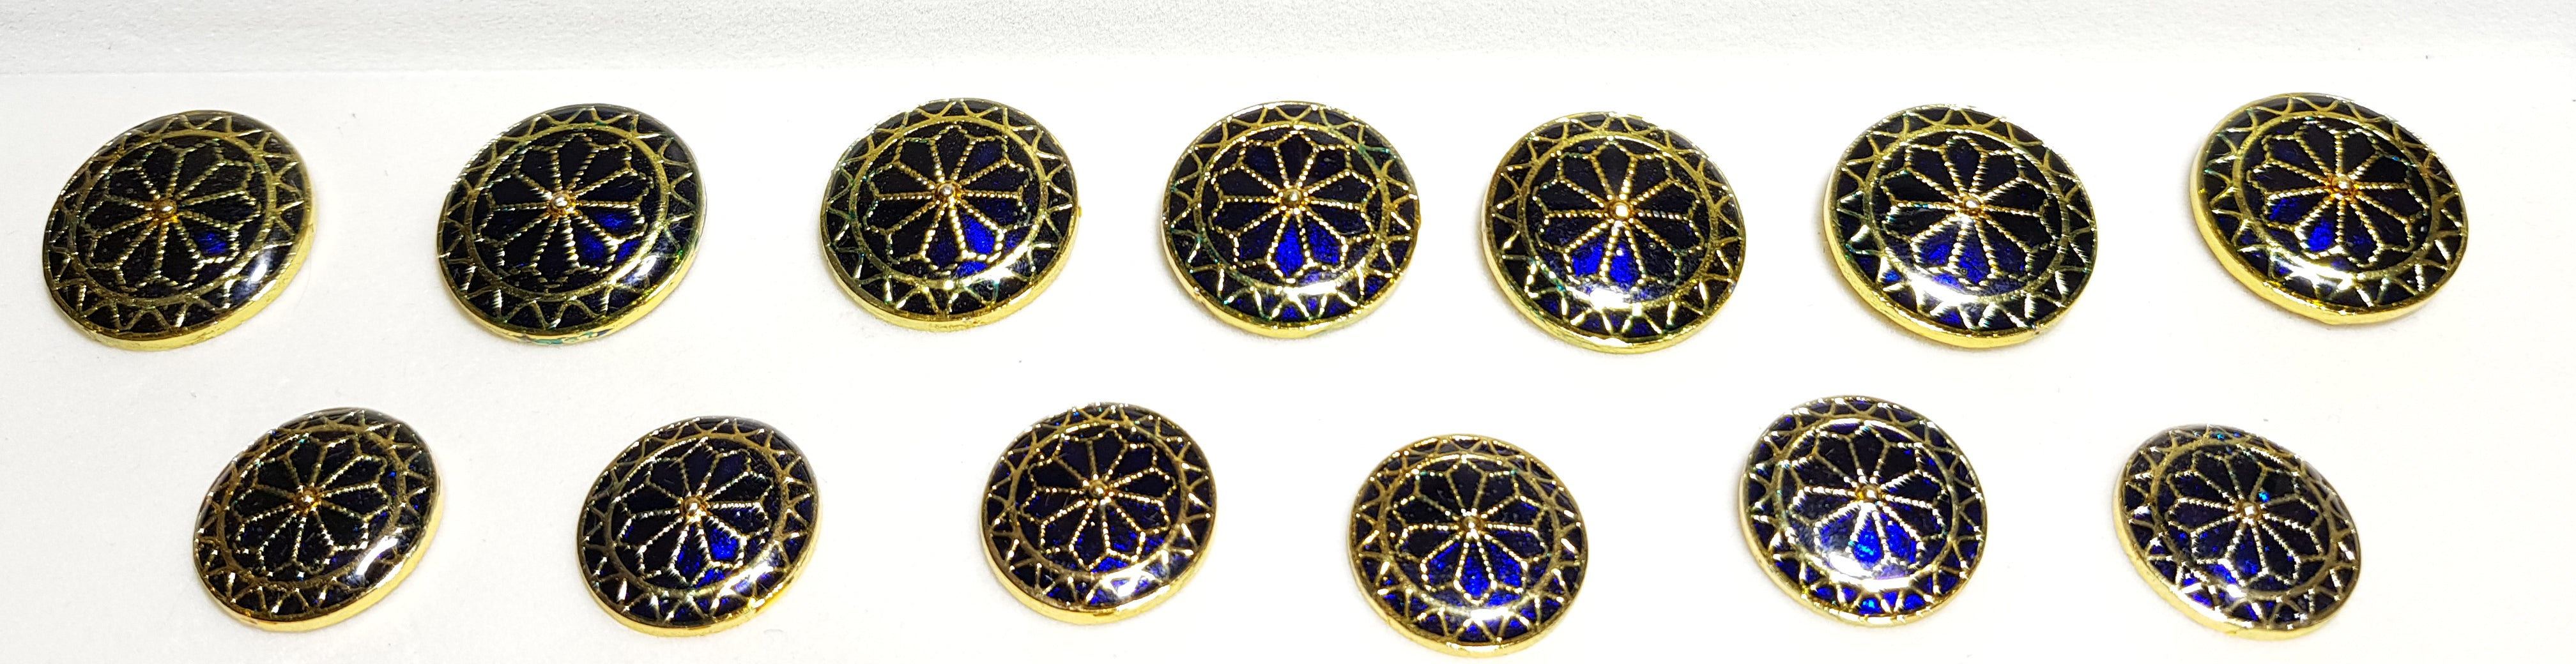 Blue Enamel Golden Radiation Buttons